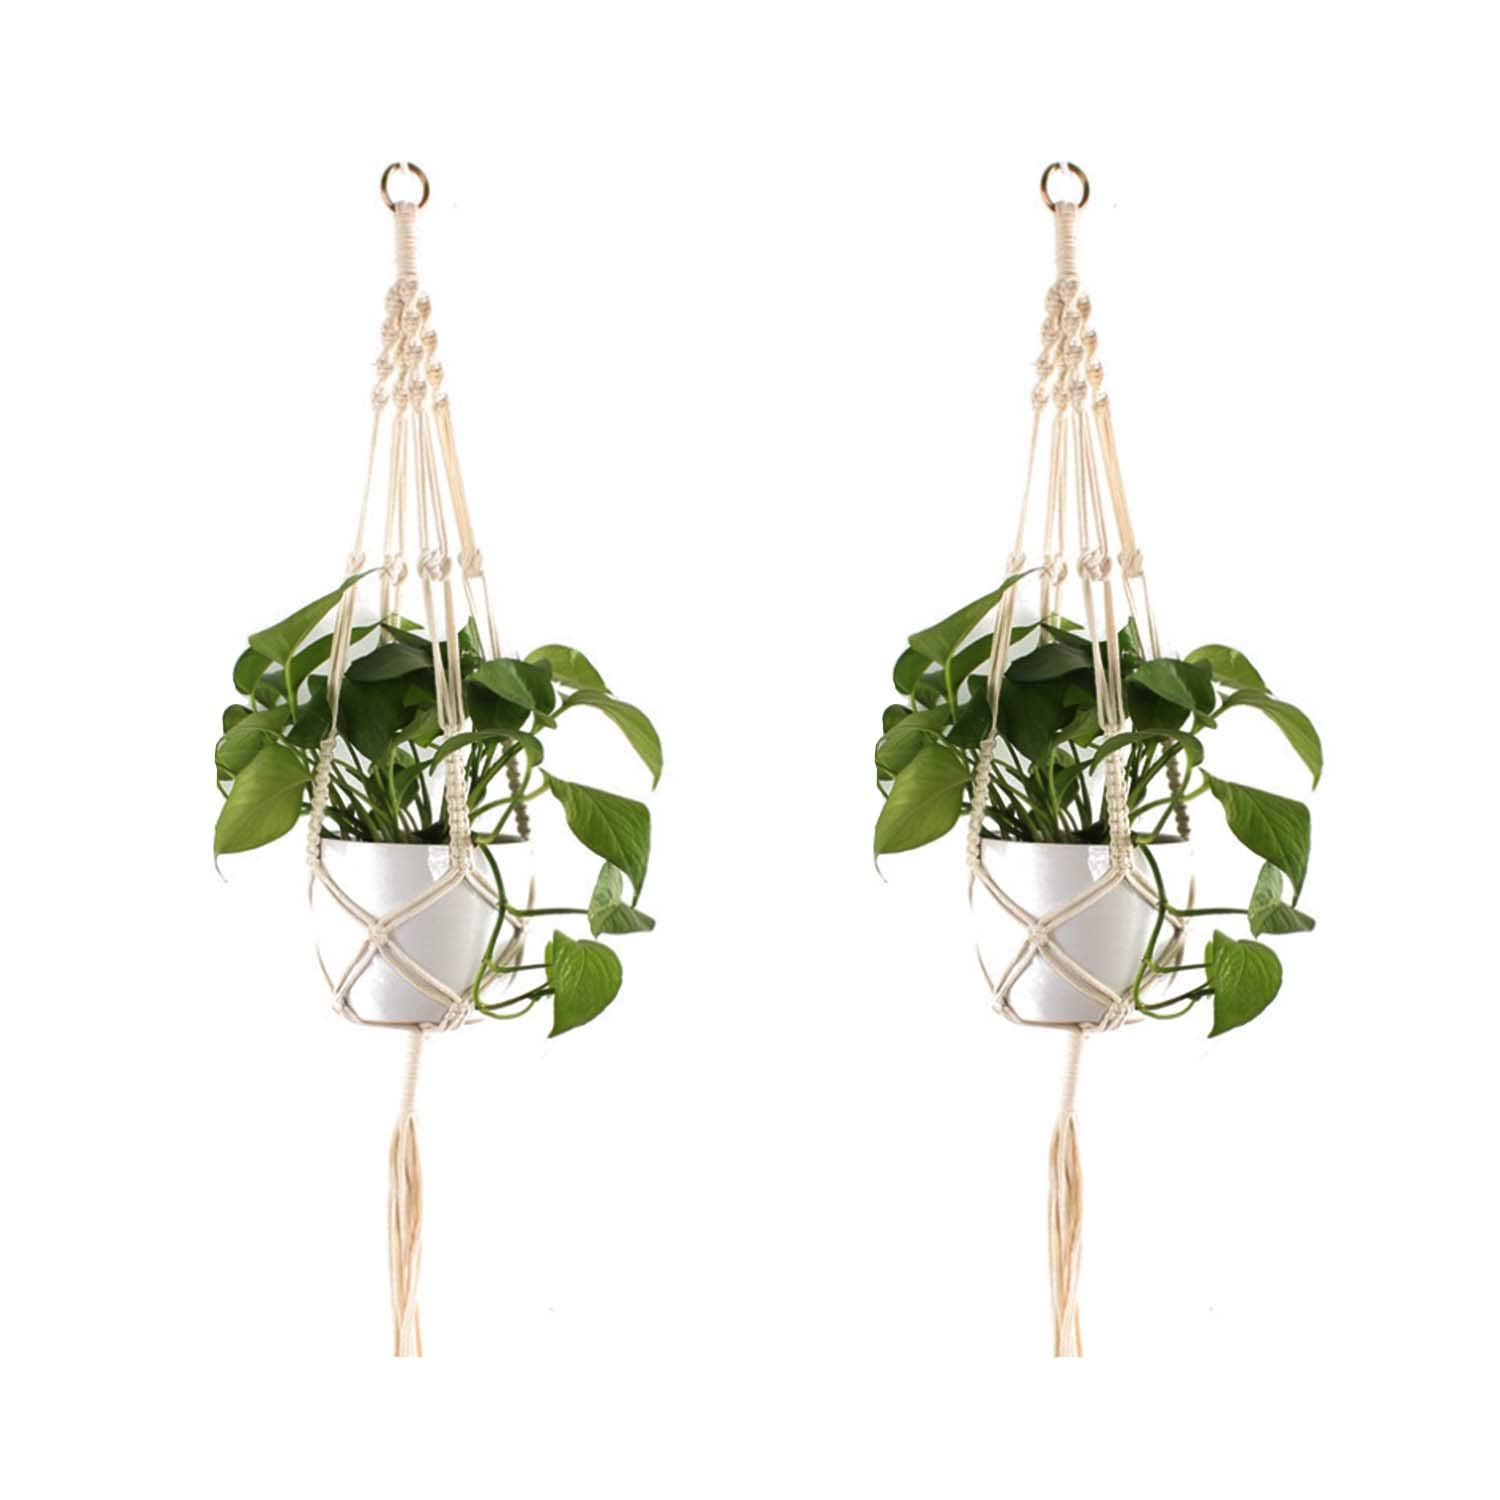 Macrame Plant Hanger Shelf Hanging Planter Wall Art Indoor Decorative Pot Holder Boho Chic Bohemian Home Decor 41 Inches and 46 Inches, Set of 2